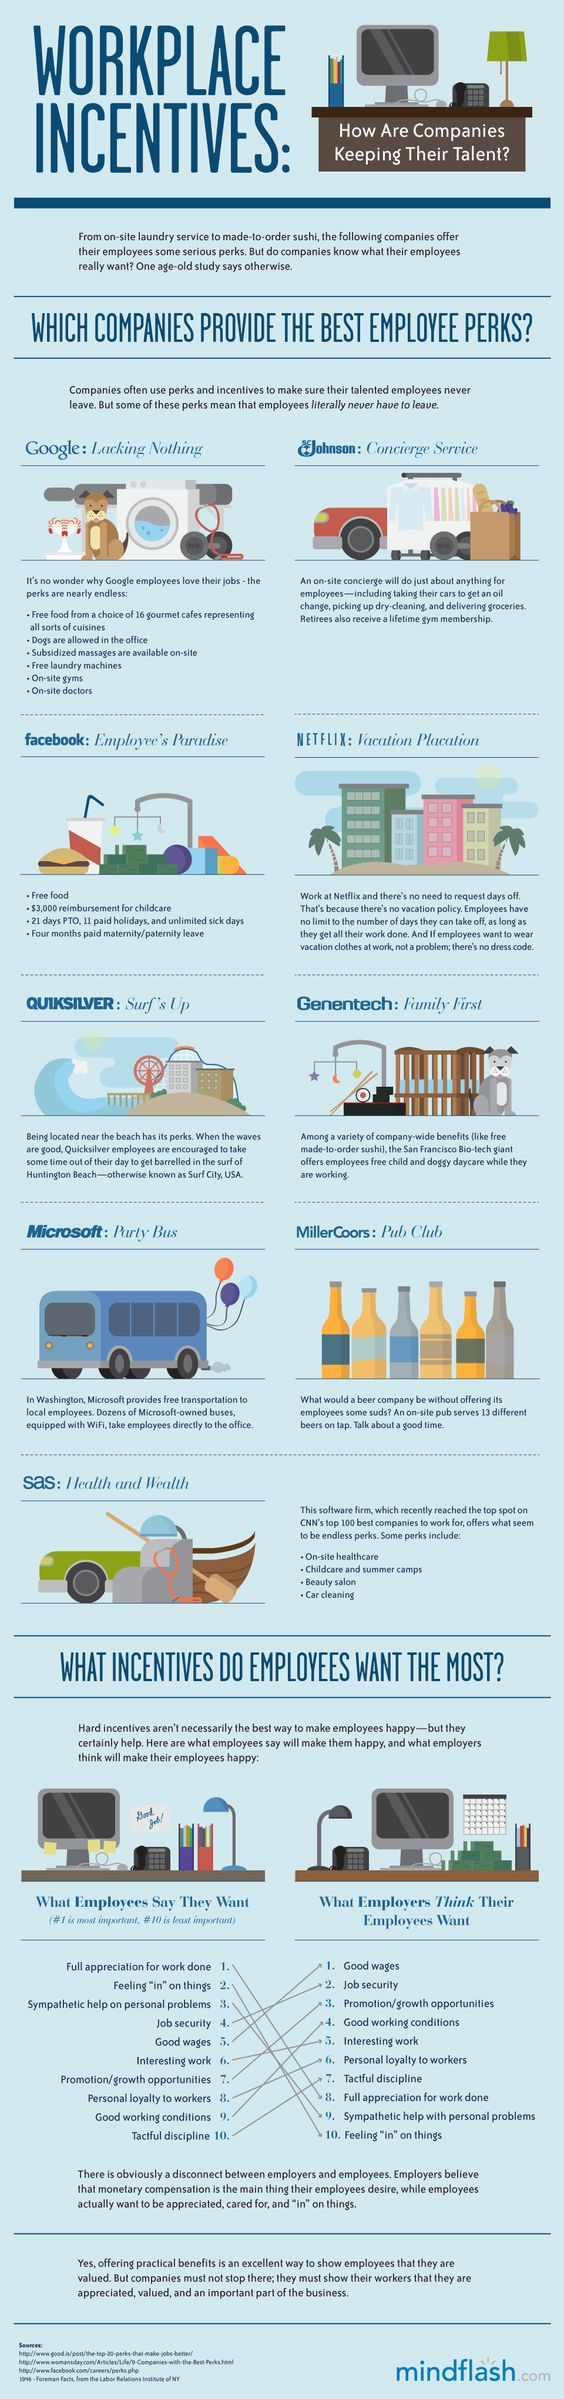 Workplace Incentives: How Companies Keep Their Talent #infographic